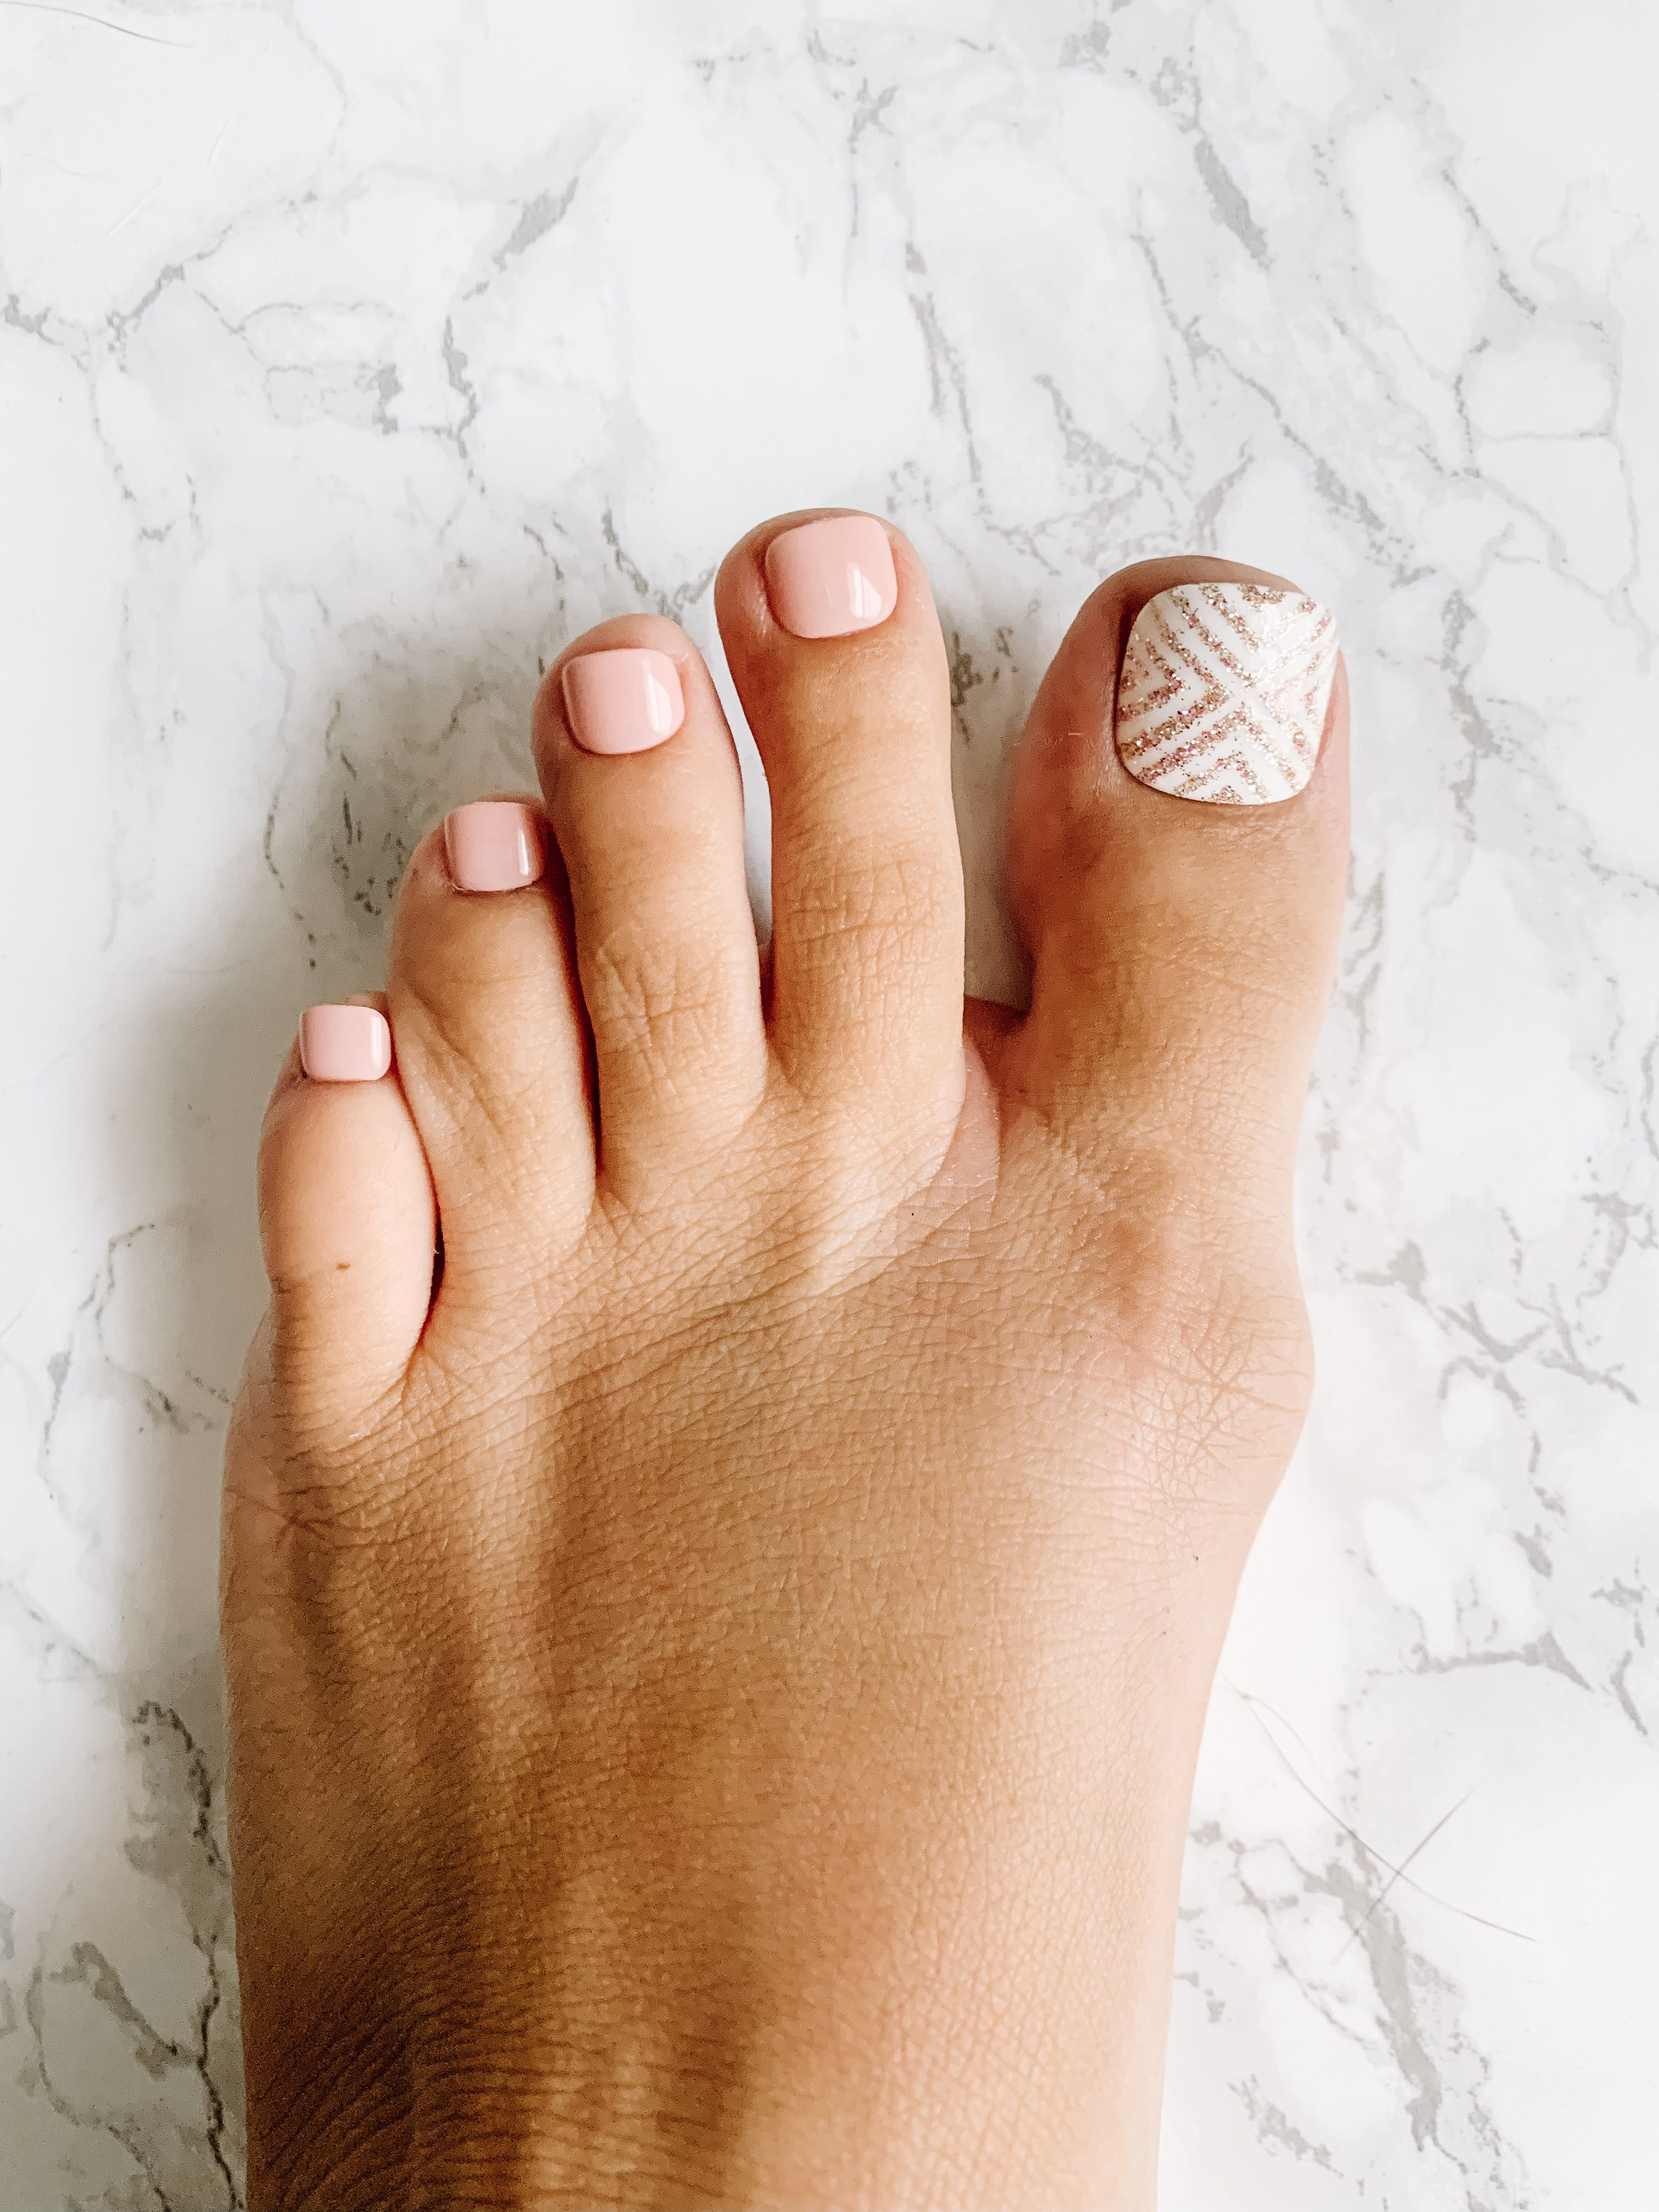 Can you believe these are presson toenails? Omg!!! (With